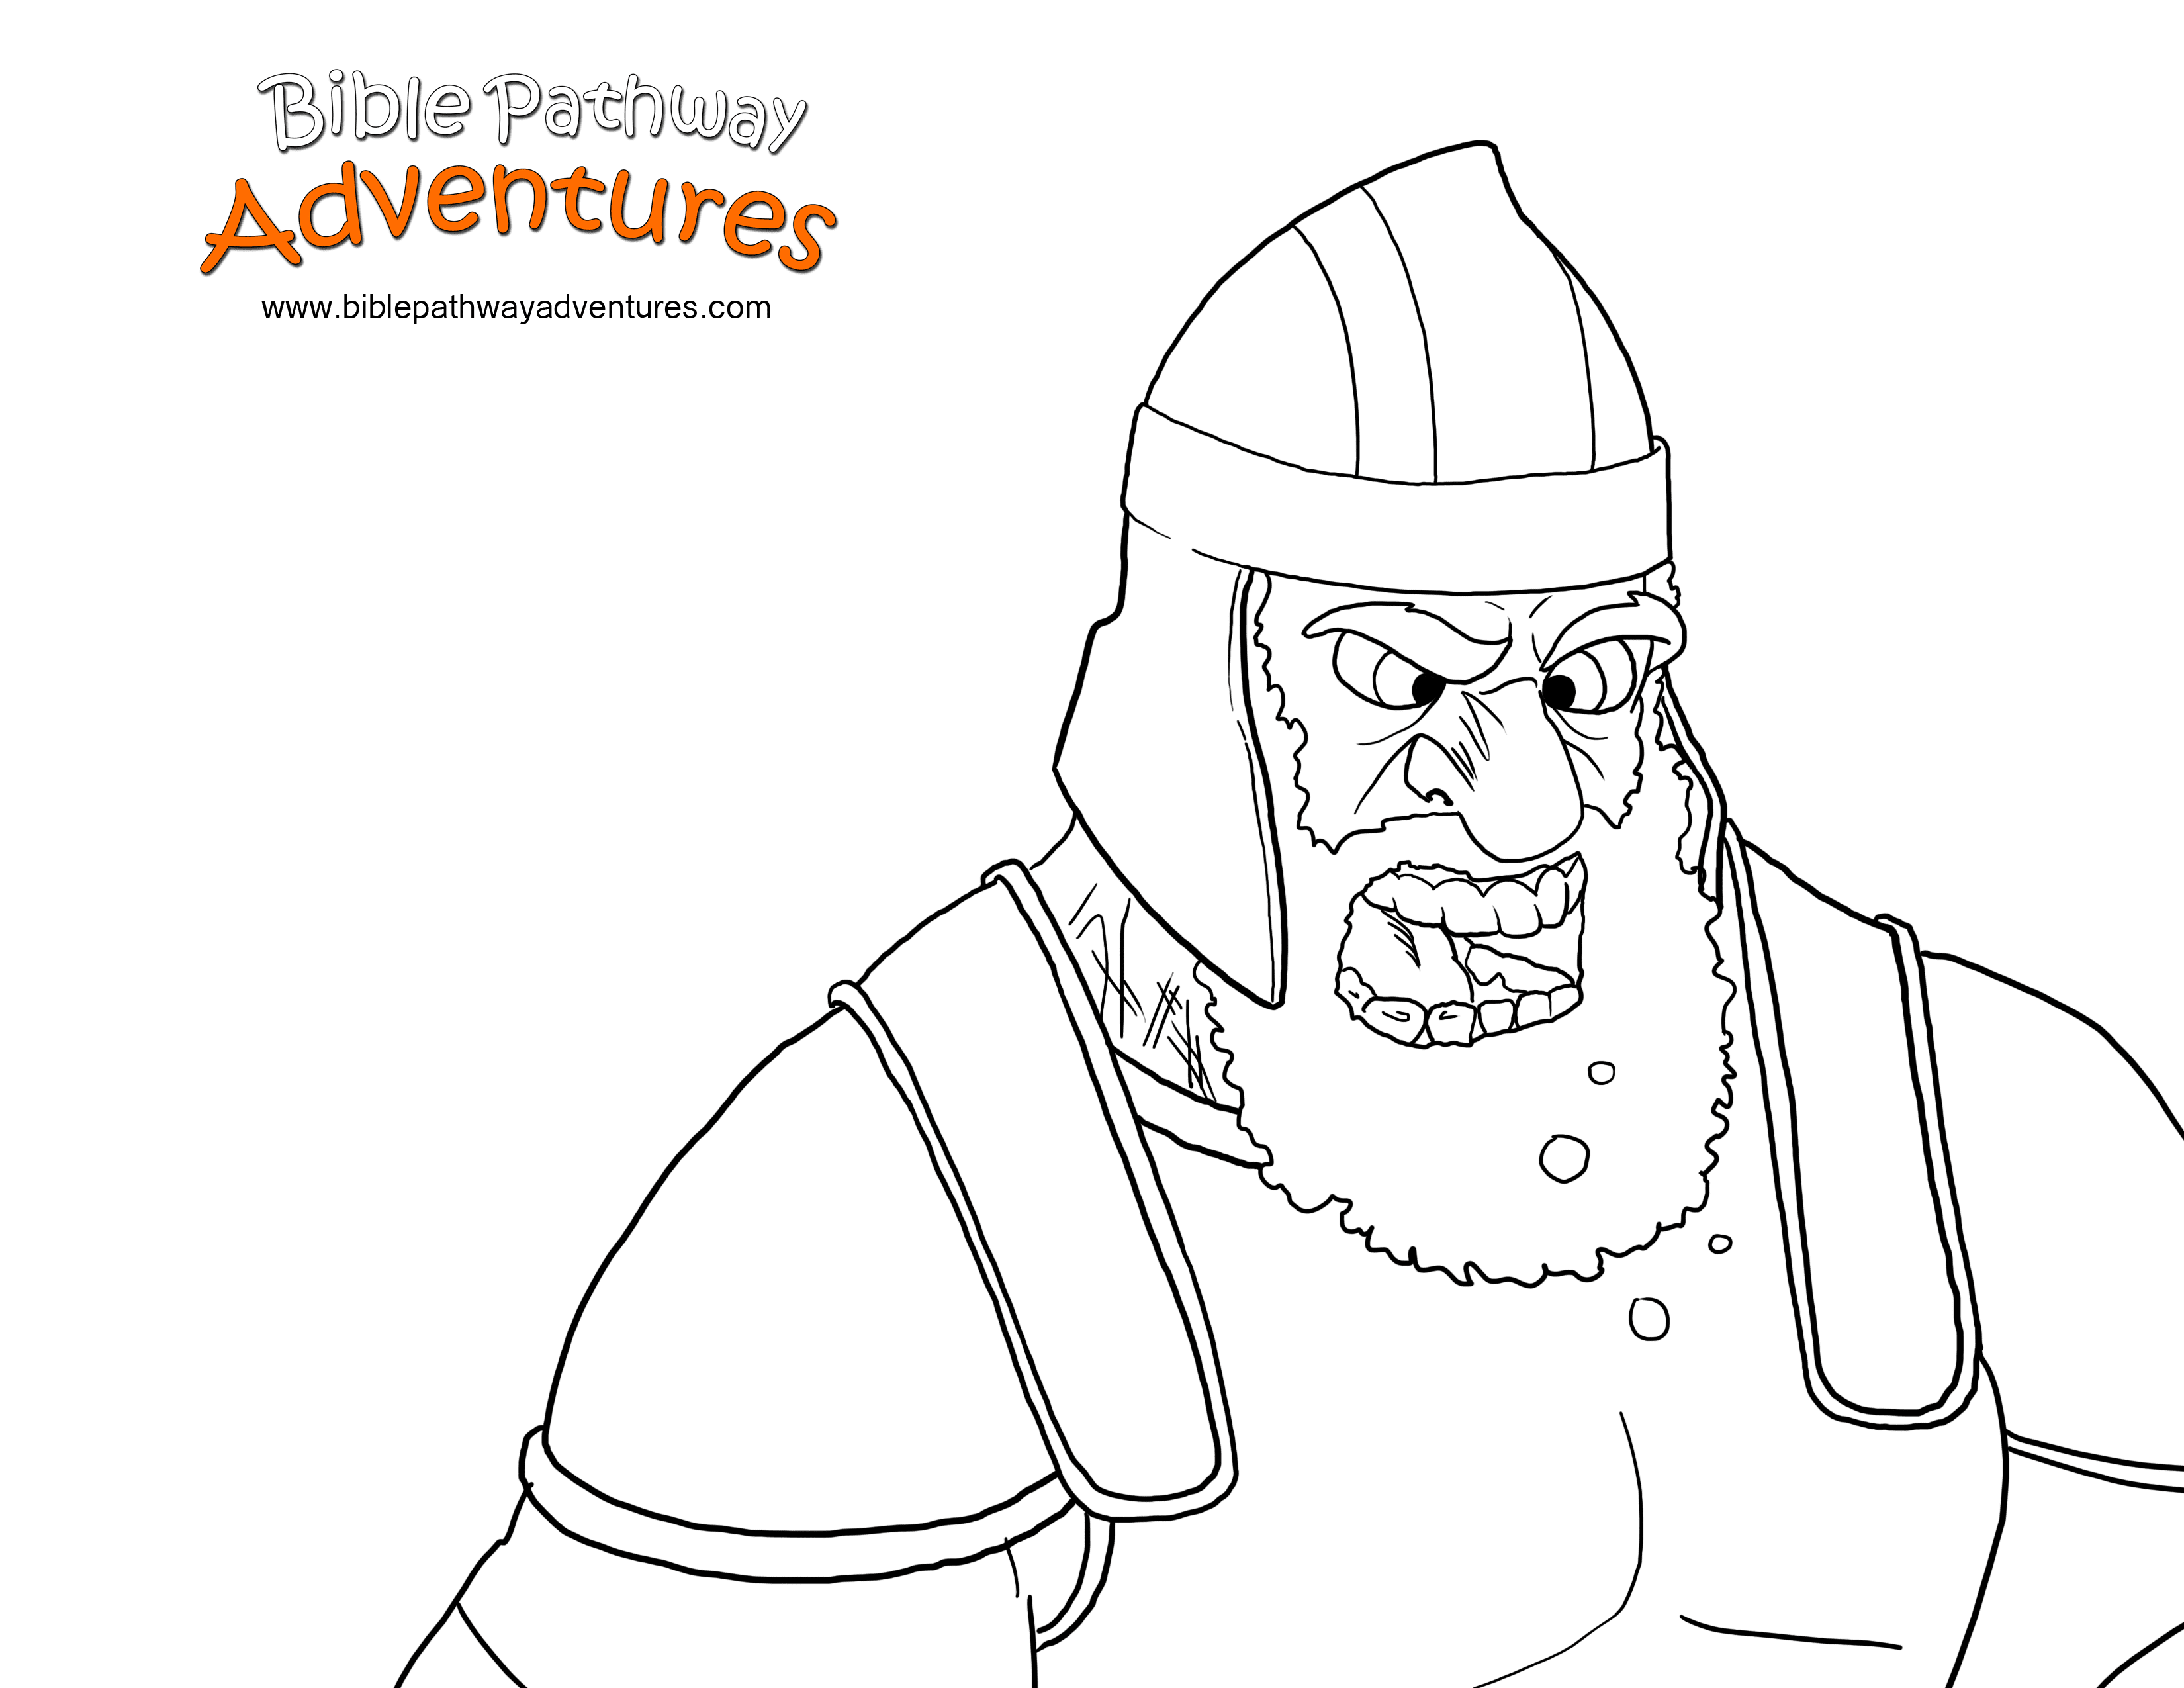 Free Bible Story Coloring Page The giant Goliath